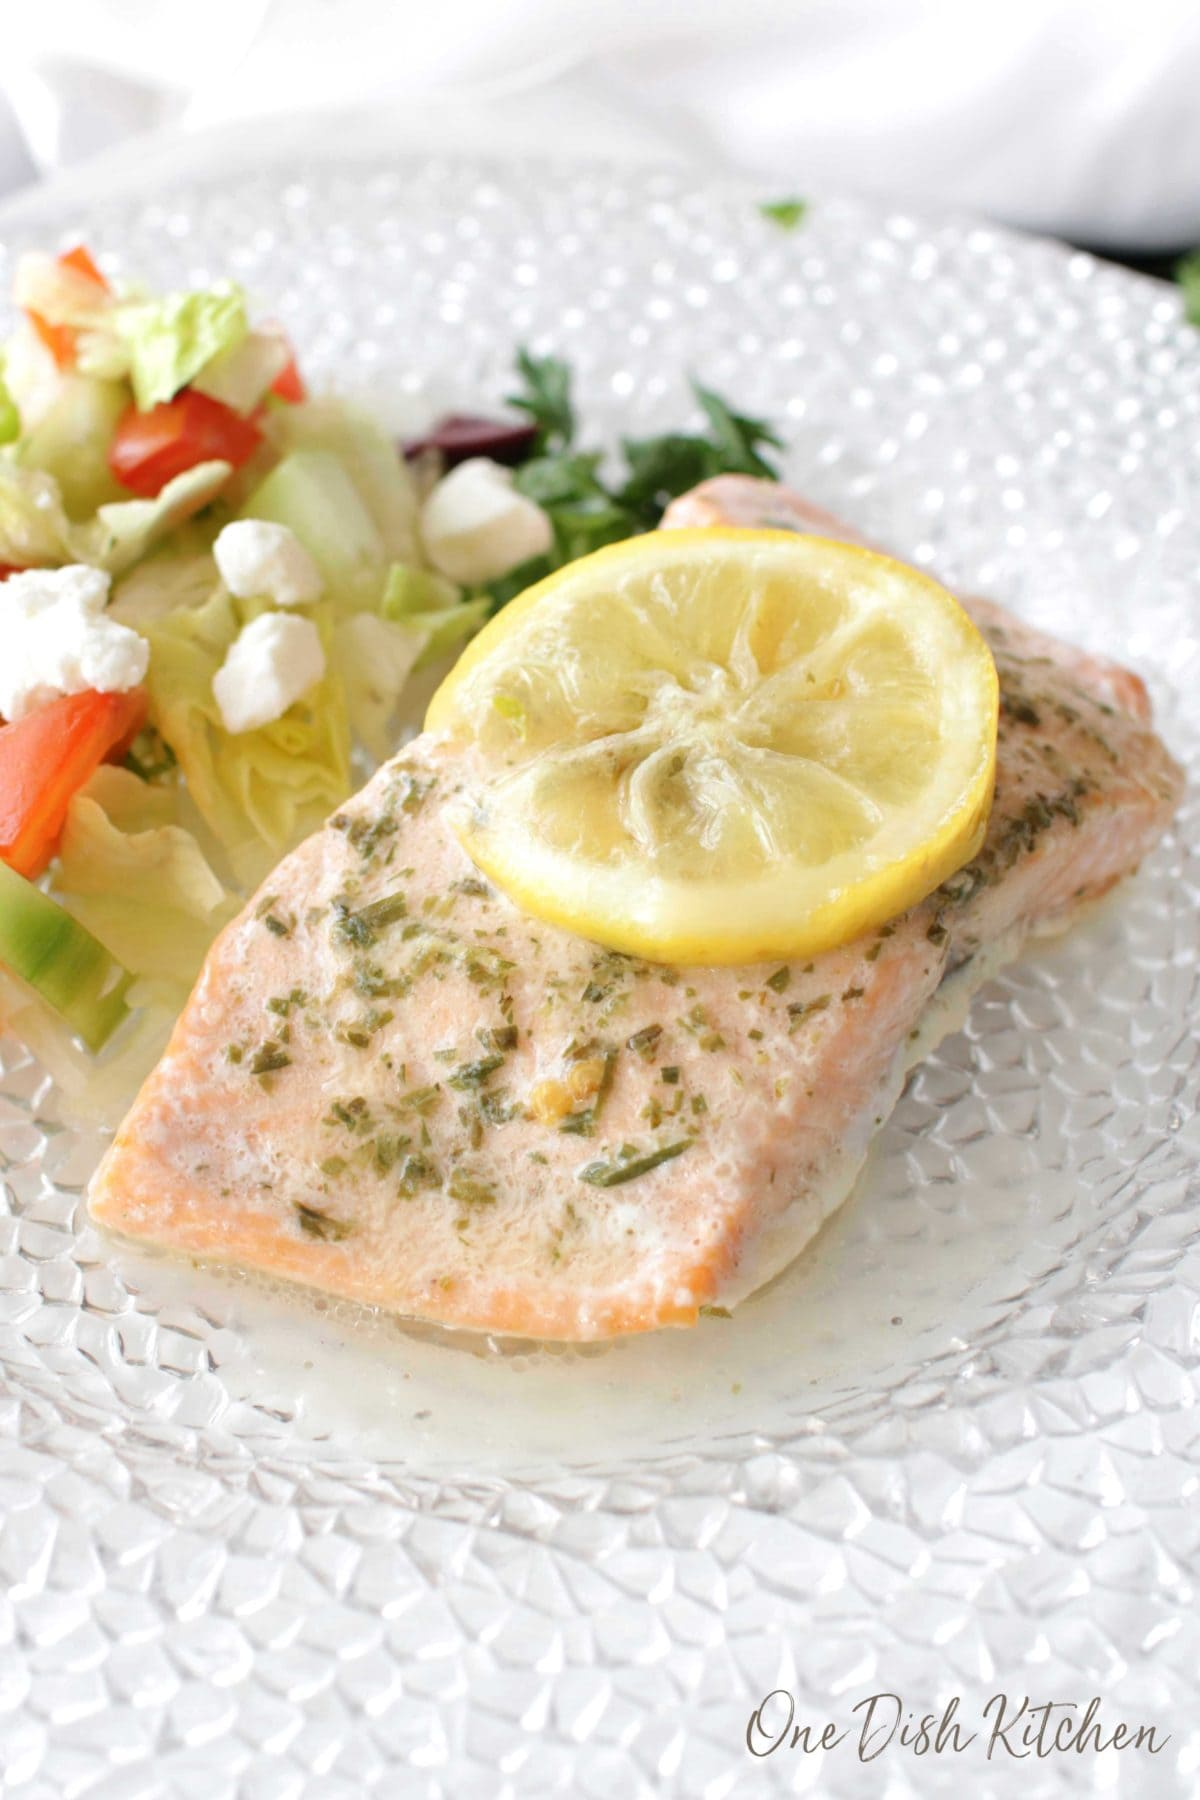 a piece of salmon that was baked in foil on a white plate topped with a lemon slice next to a salad